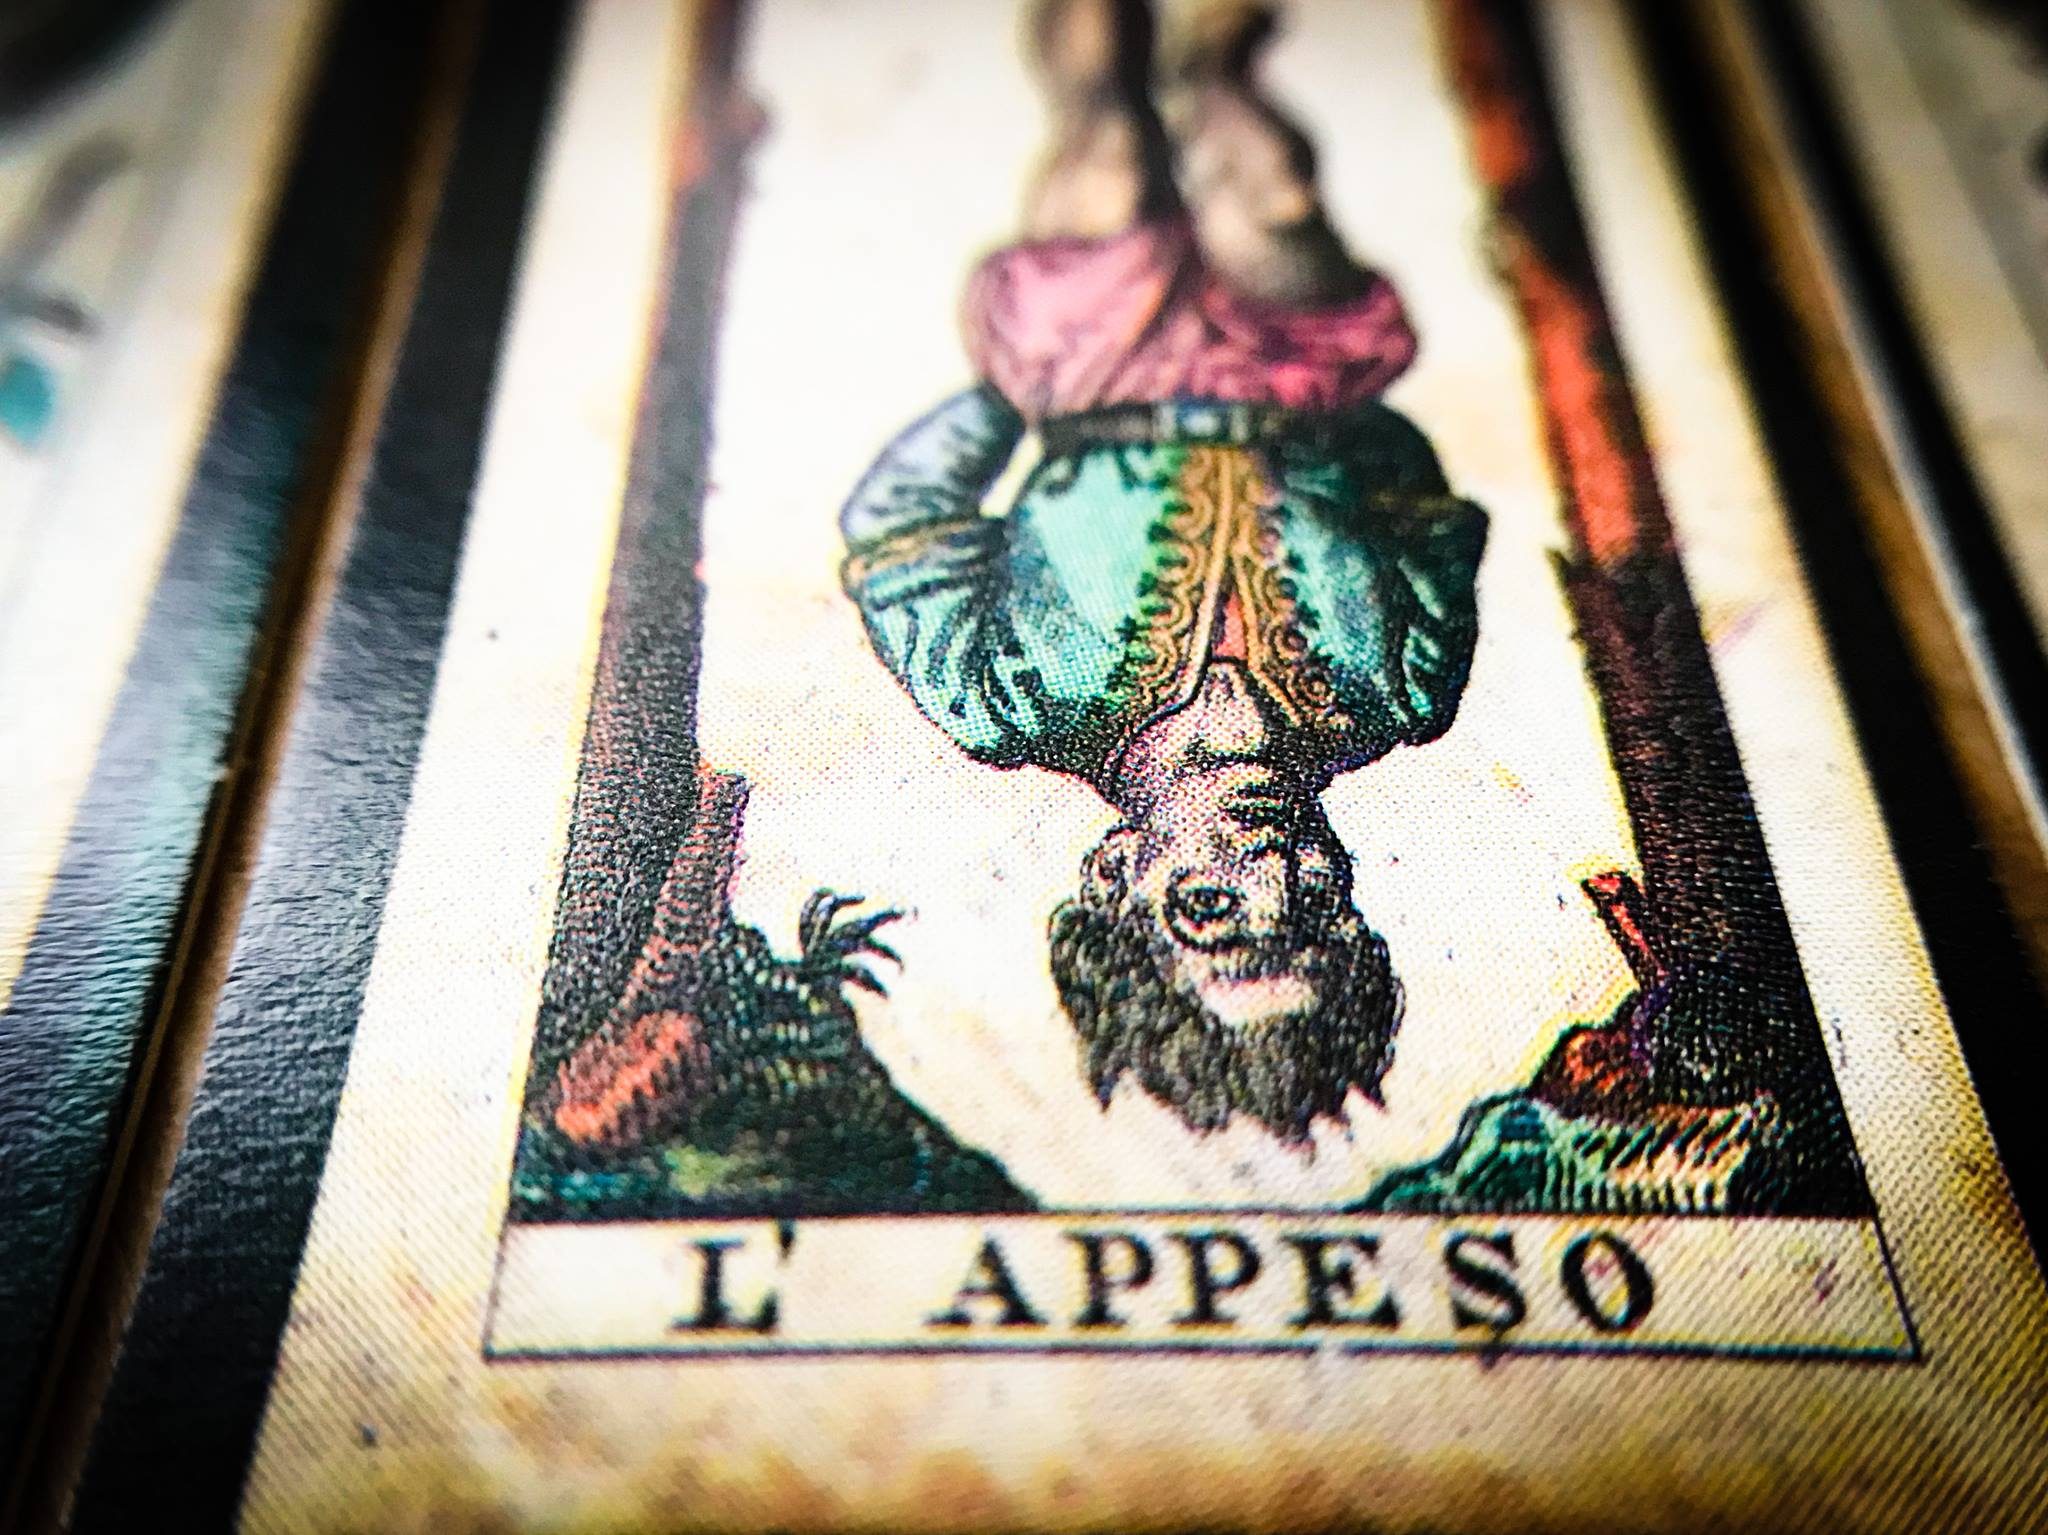 Soprafino Tarot (Photo: Camelia Elias)